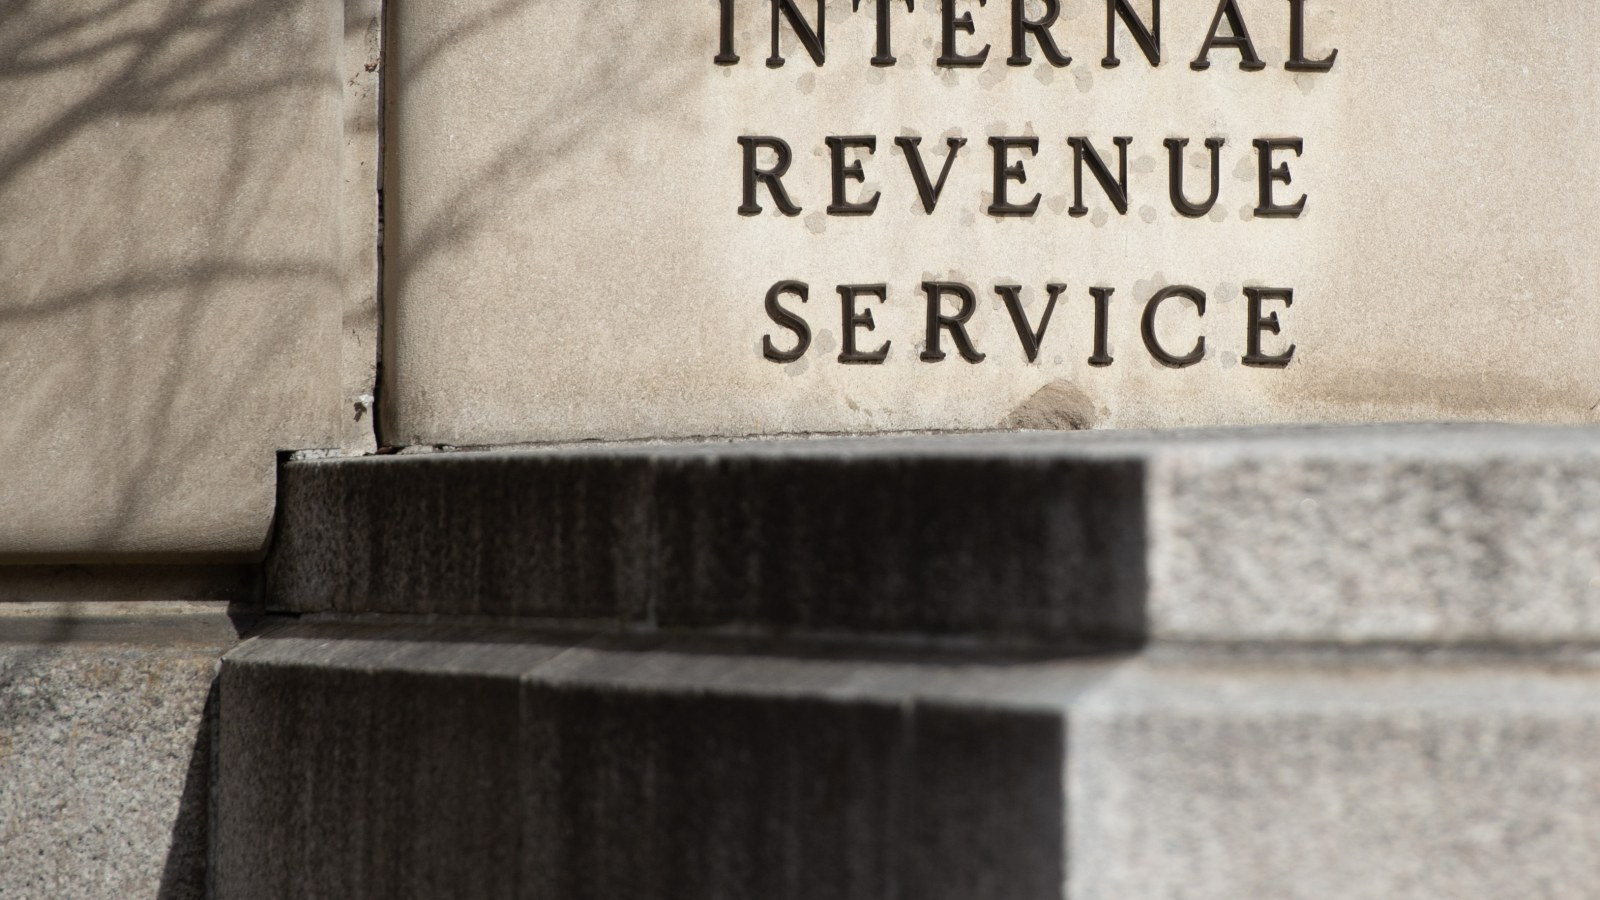 SSI Stimulus Check Update As IRS Employees 'Working Tirelessly' to Get Payments Out